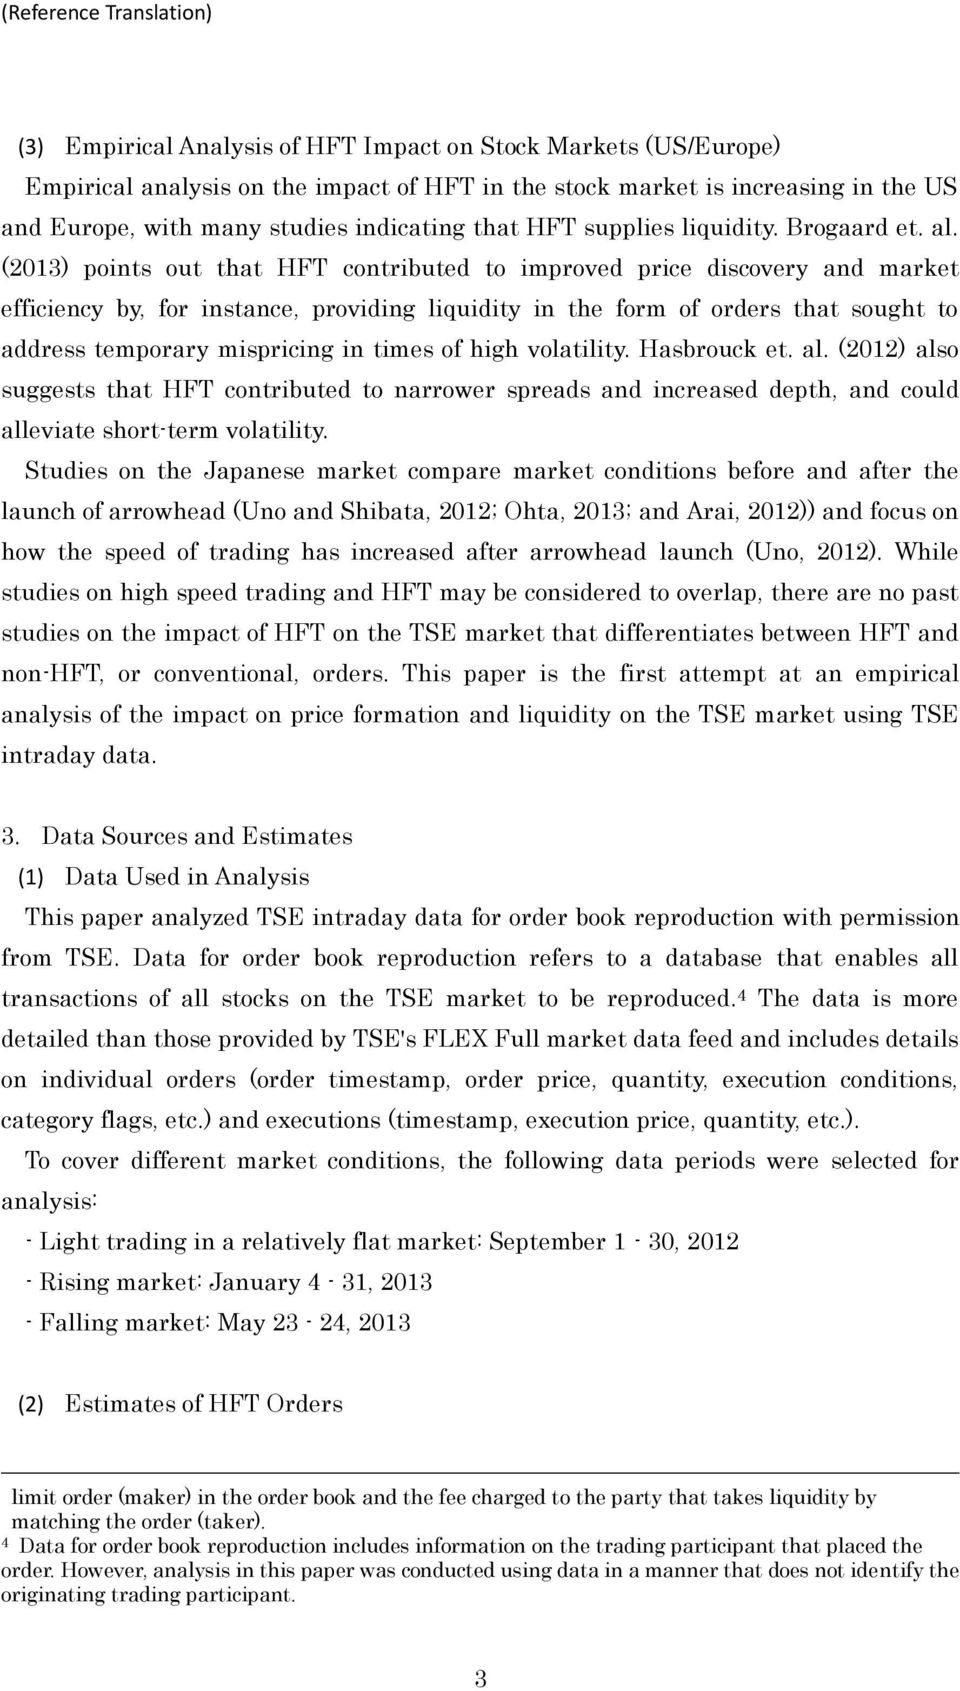 (2013) points out that HFT contributed to improved price discovery and market efficiency by, for instance, providing liquidity in the form of orders that sought to address temporary mispricing in